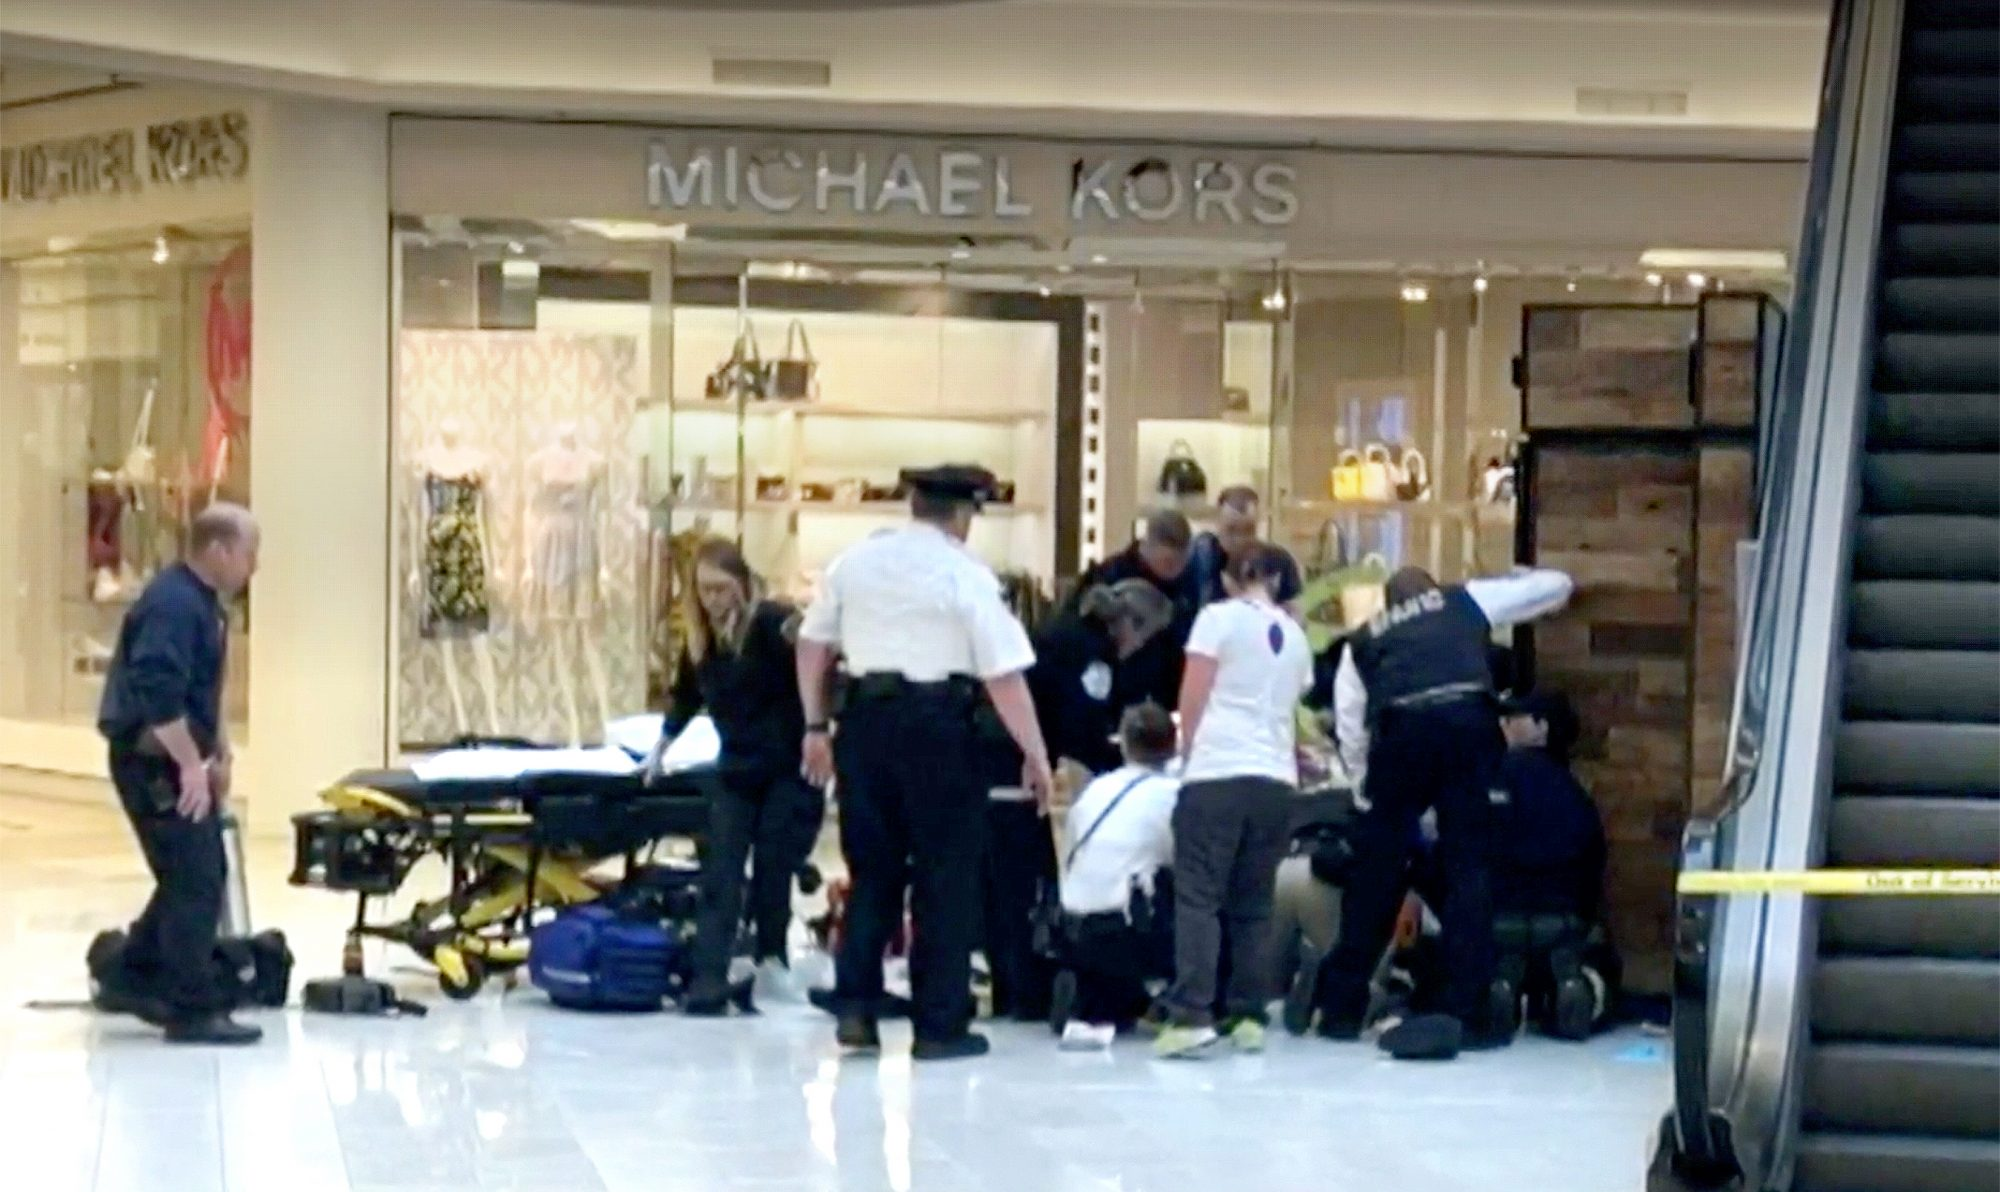 A child was reportedly thrown from a balcony at the Mall of America, and one person has been taken into custody.